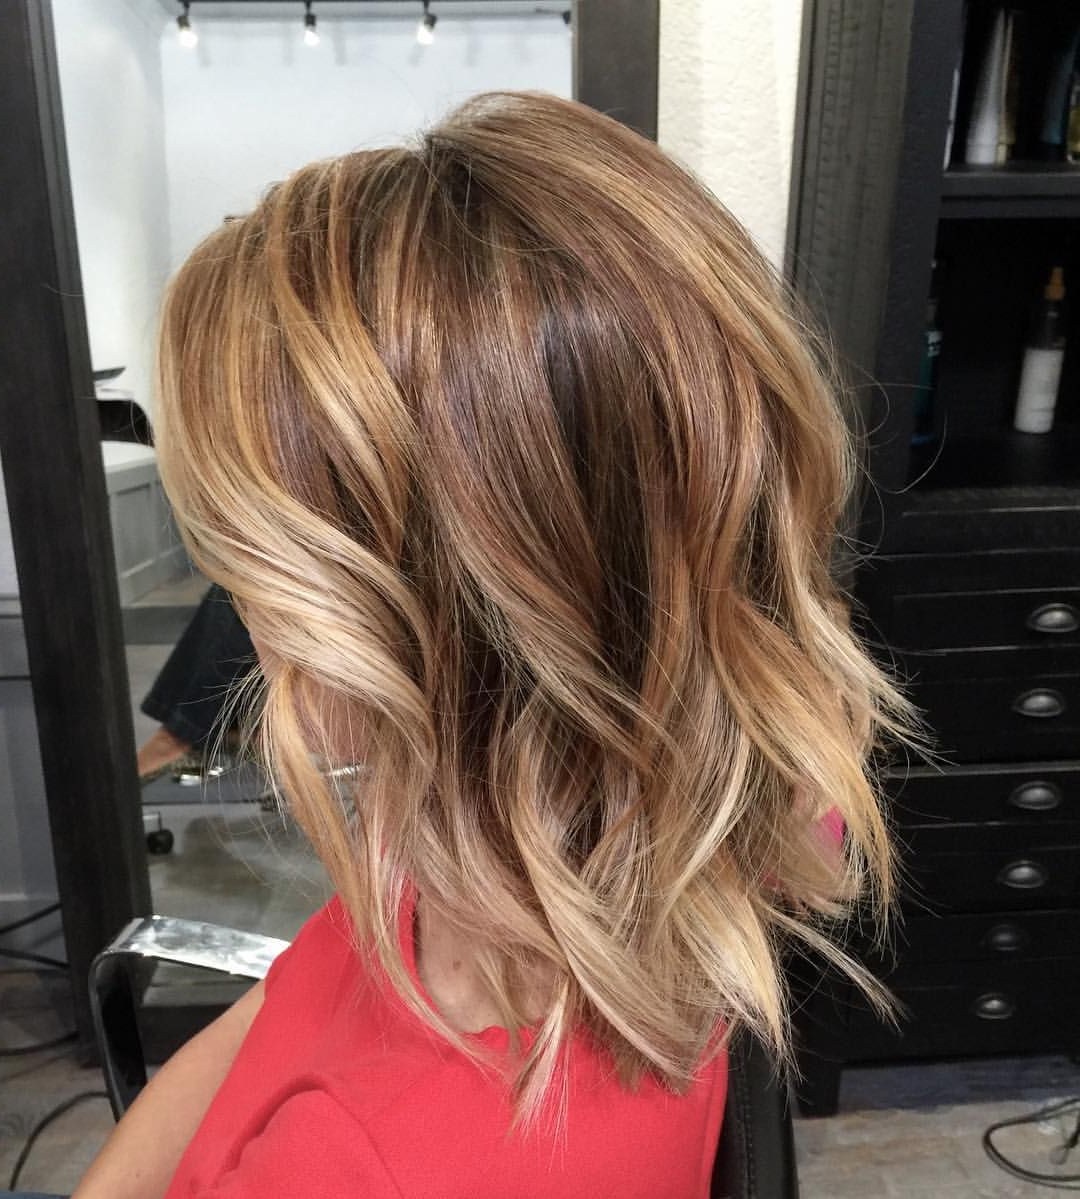 Cute Hairstyle – Bronde Bob With Beach Waves | Beautiful Hair And Throughout Tousled Wavy Bronde Bob Hairstyles (View 8 of 20)